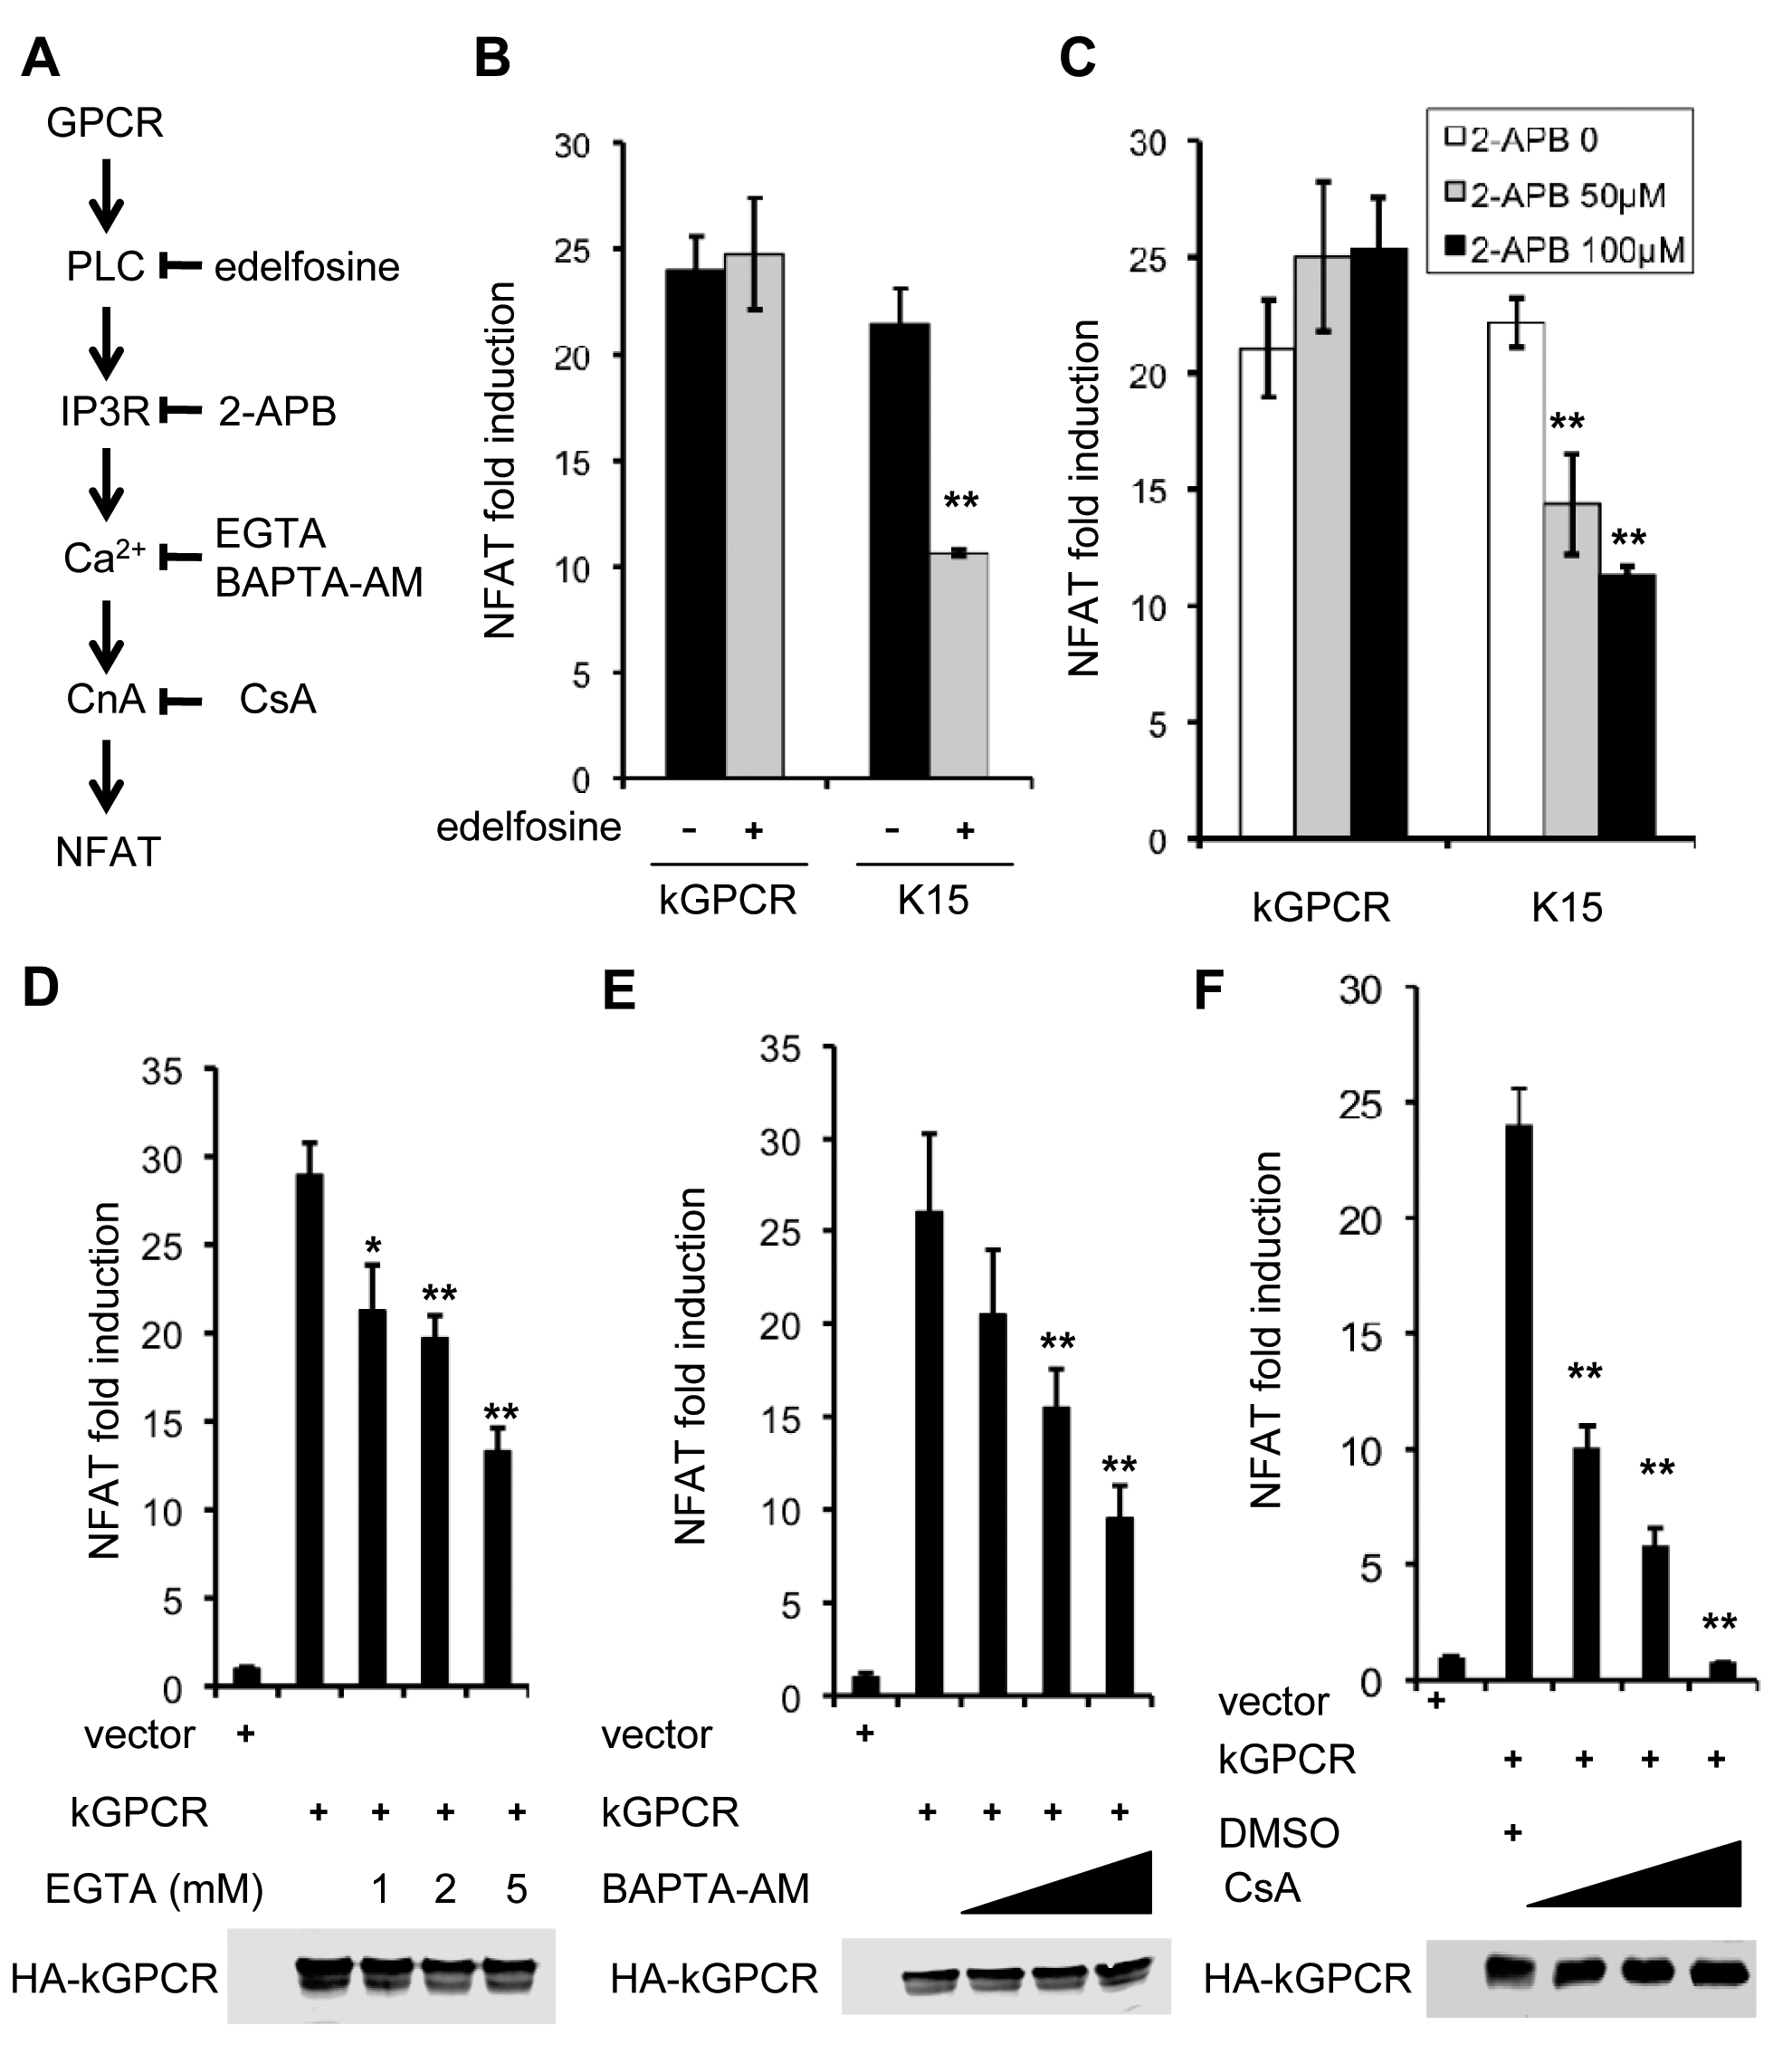 NFAT activation induced by kGPCR is resistant to inhibitors targeting components upstream of ER calcium release.